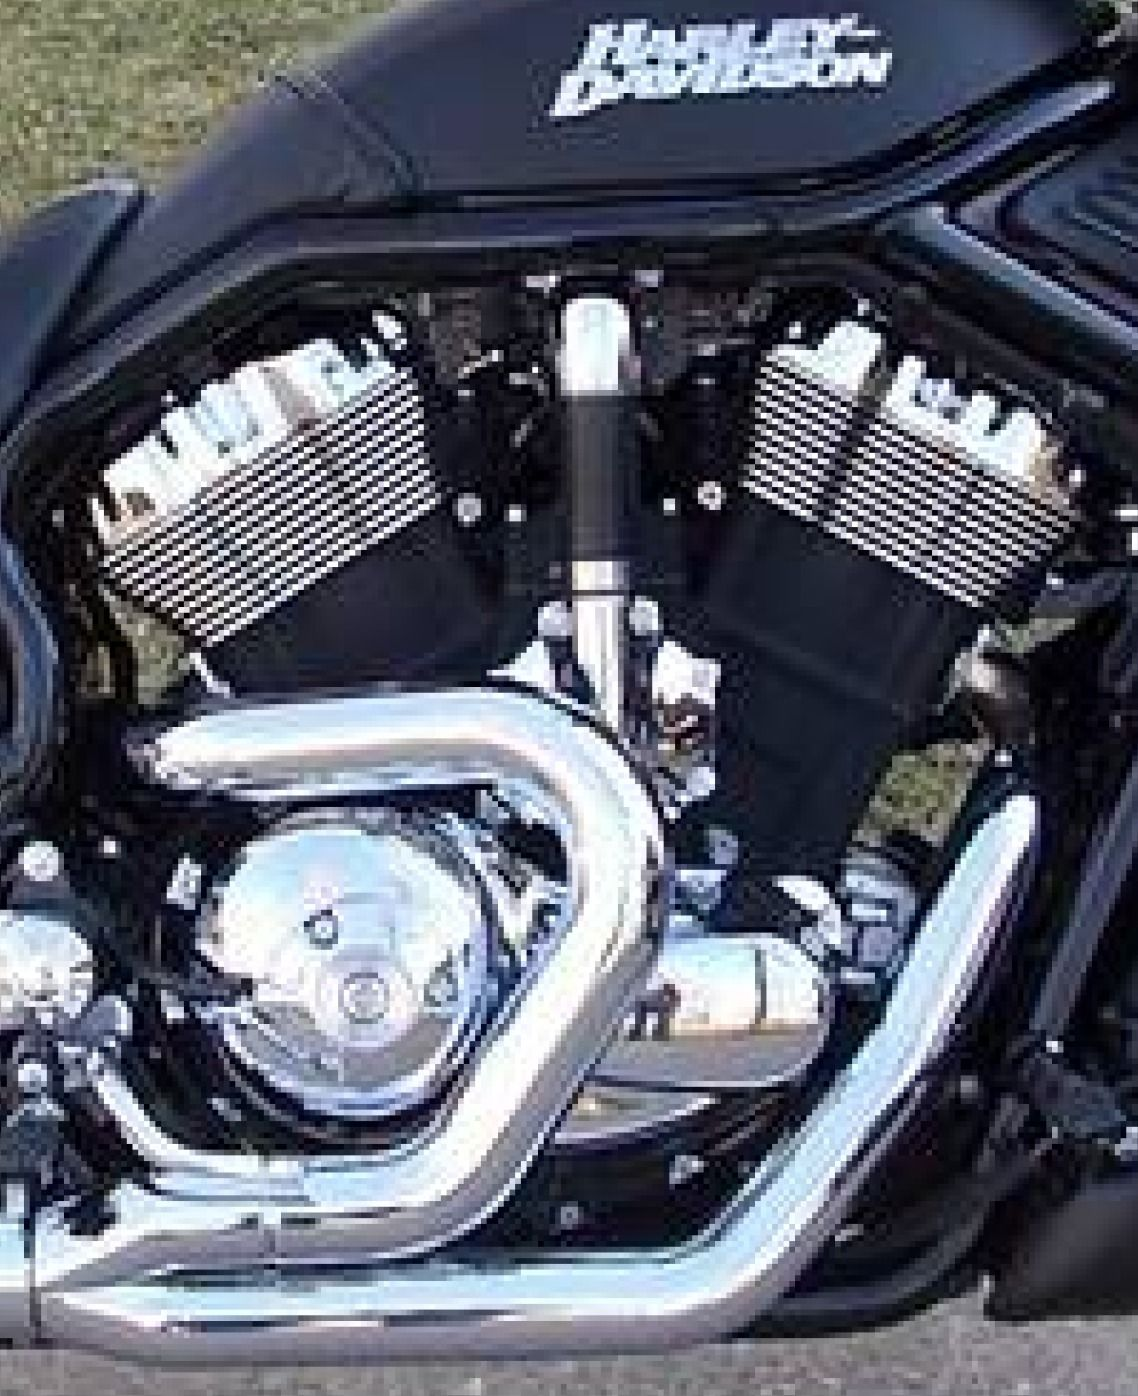 Harley Davidson VRSCA V-ROD Motorcycle Service Repair Manuals available for  Instant Download.